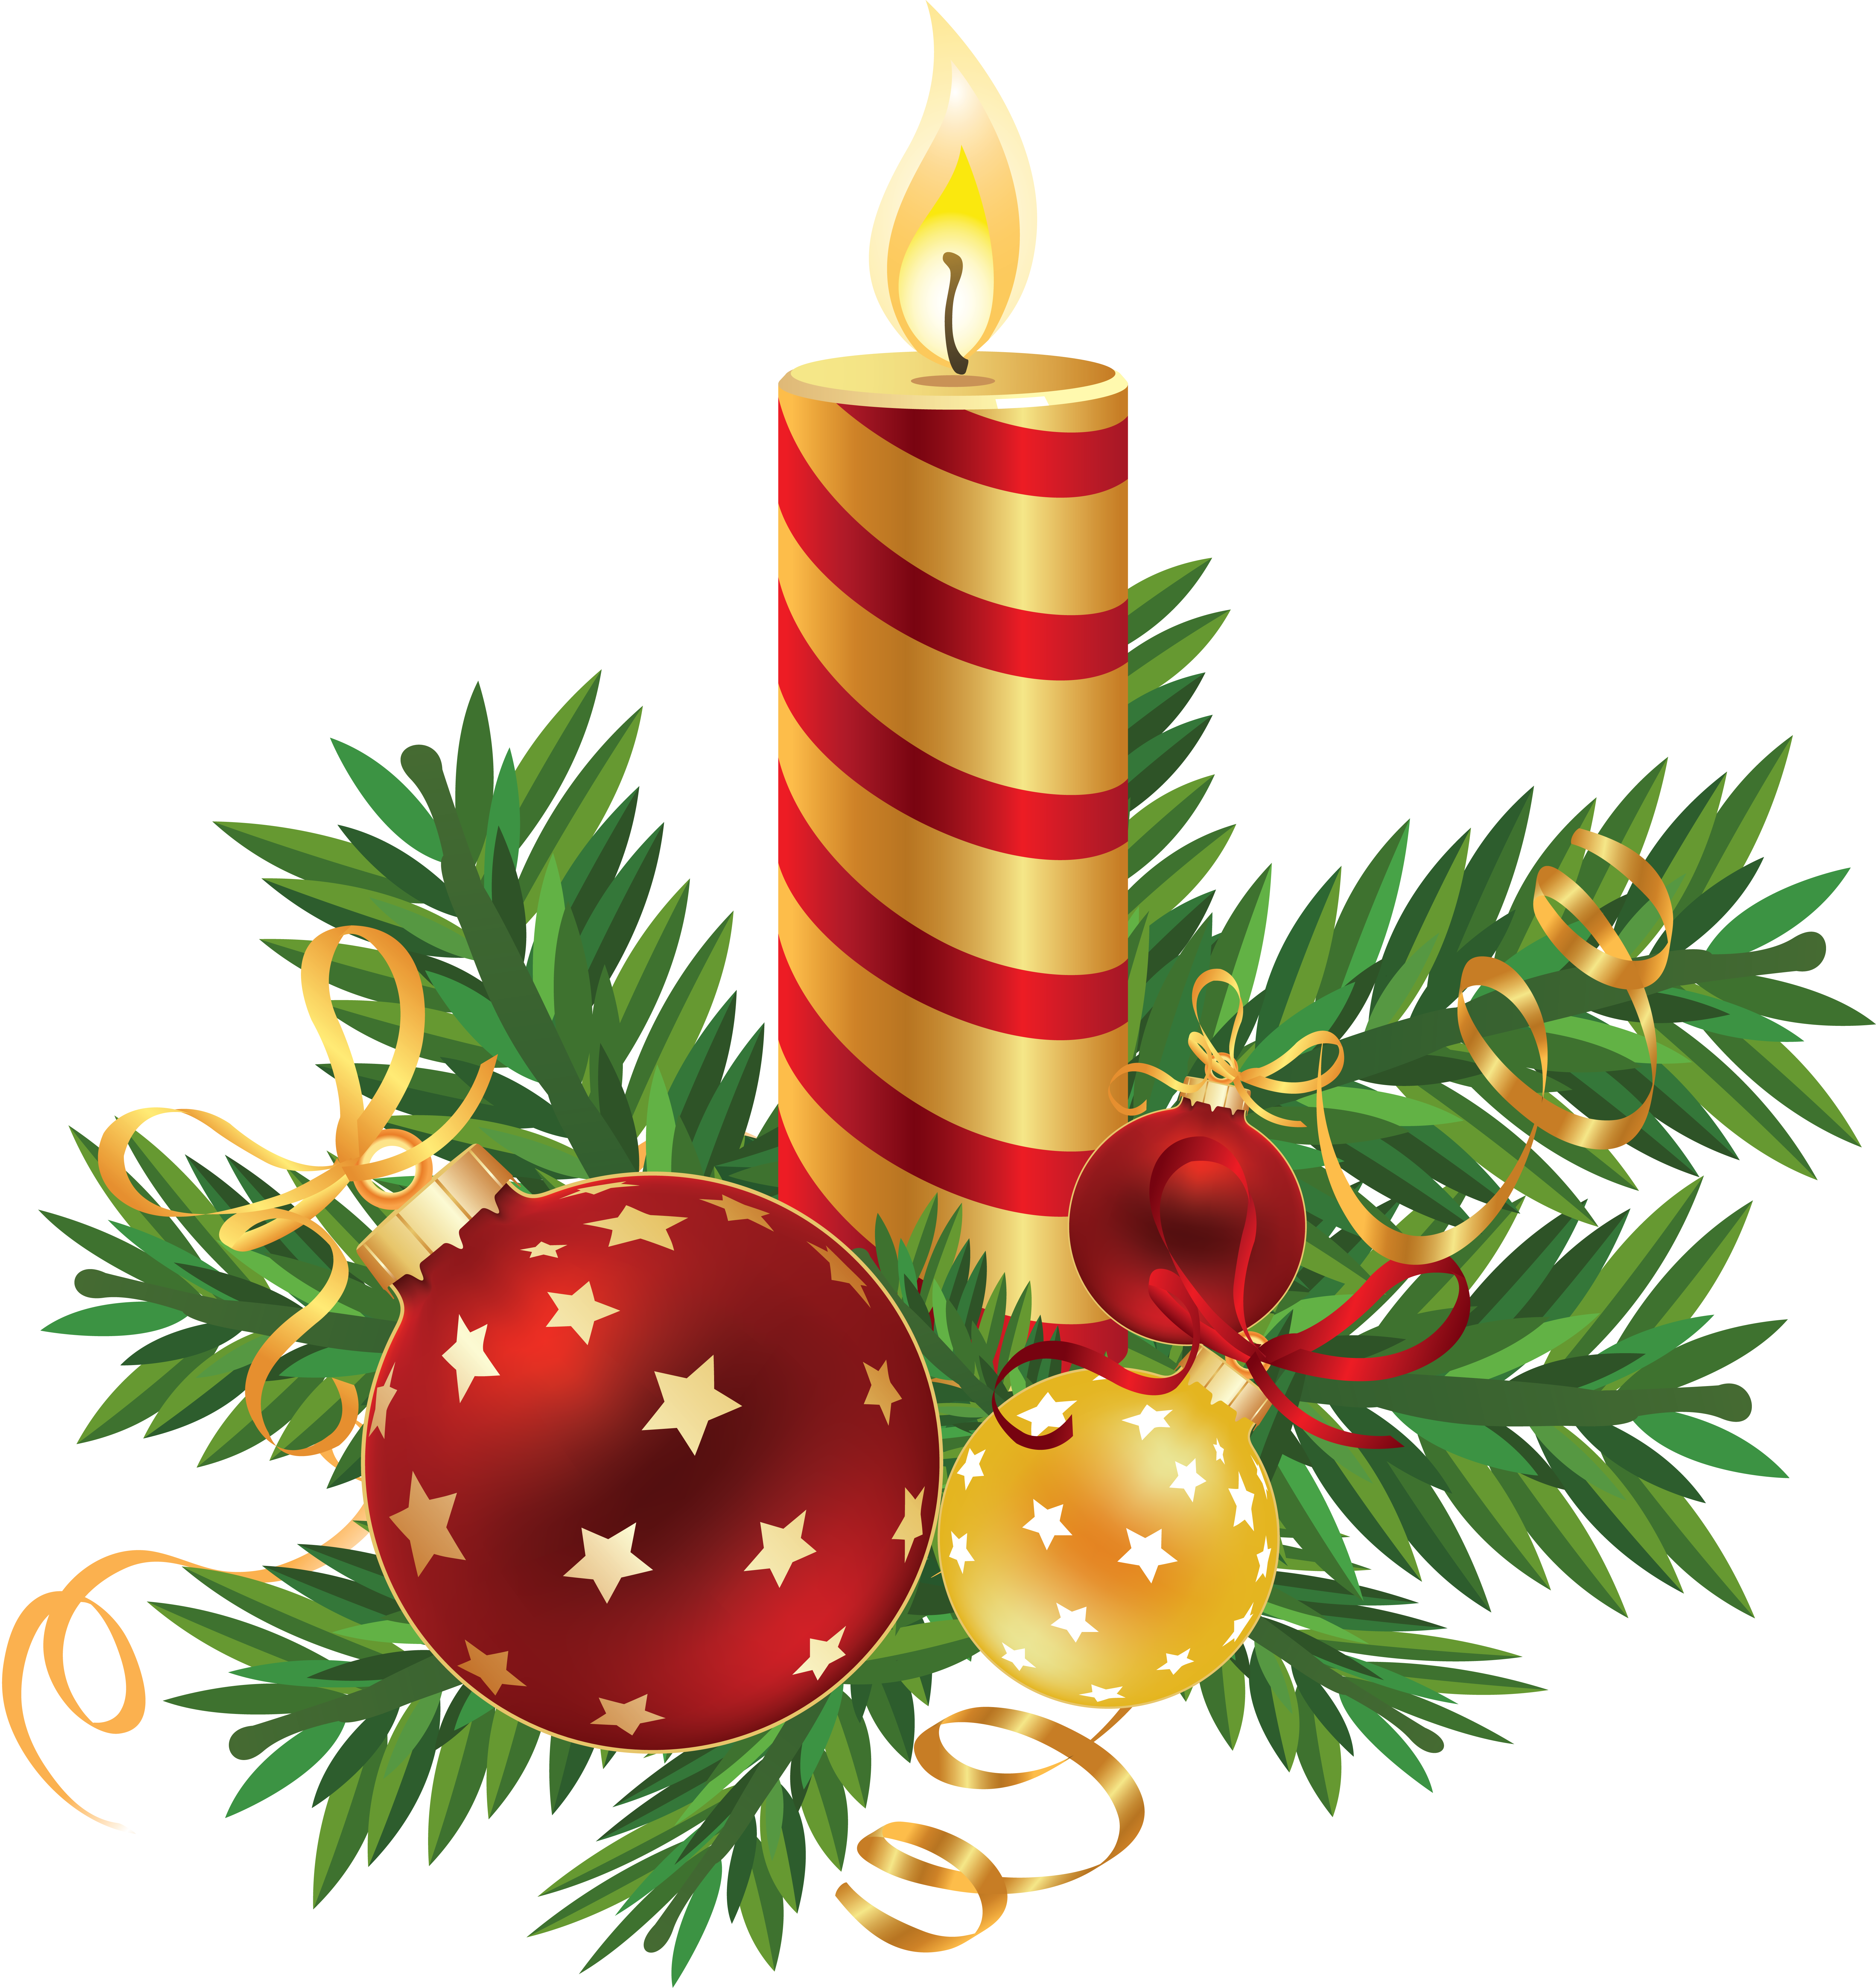 Christmas Decorations Background Pictures: Christmas Candle PNG Image - PurePNG